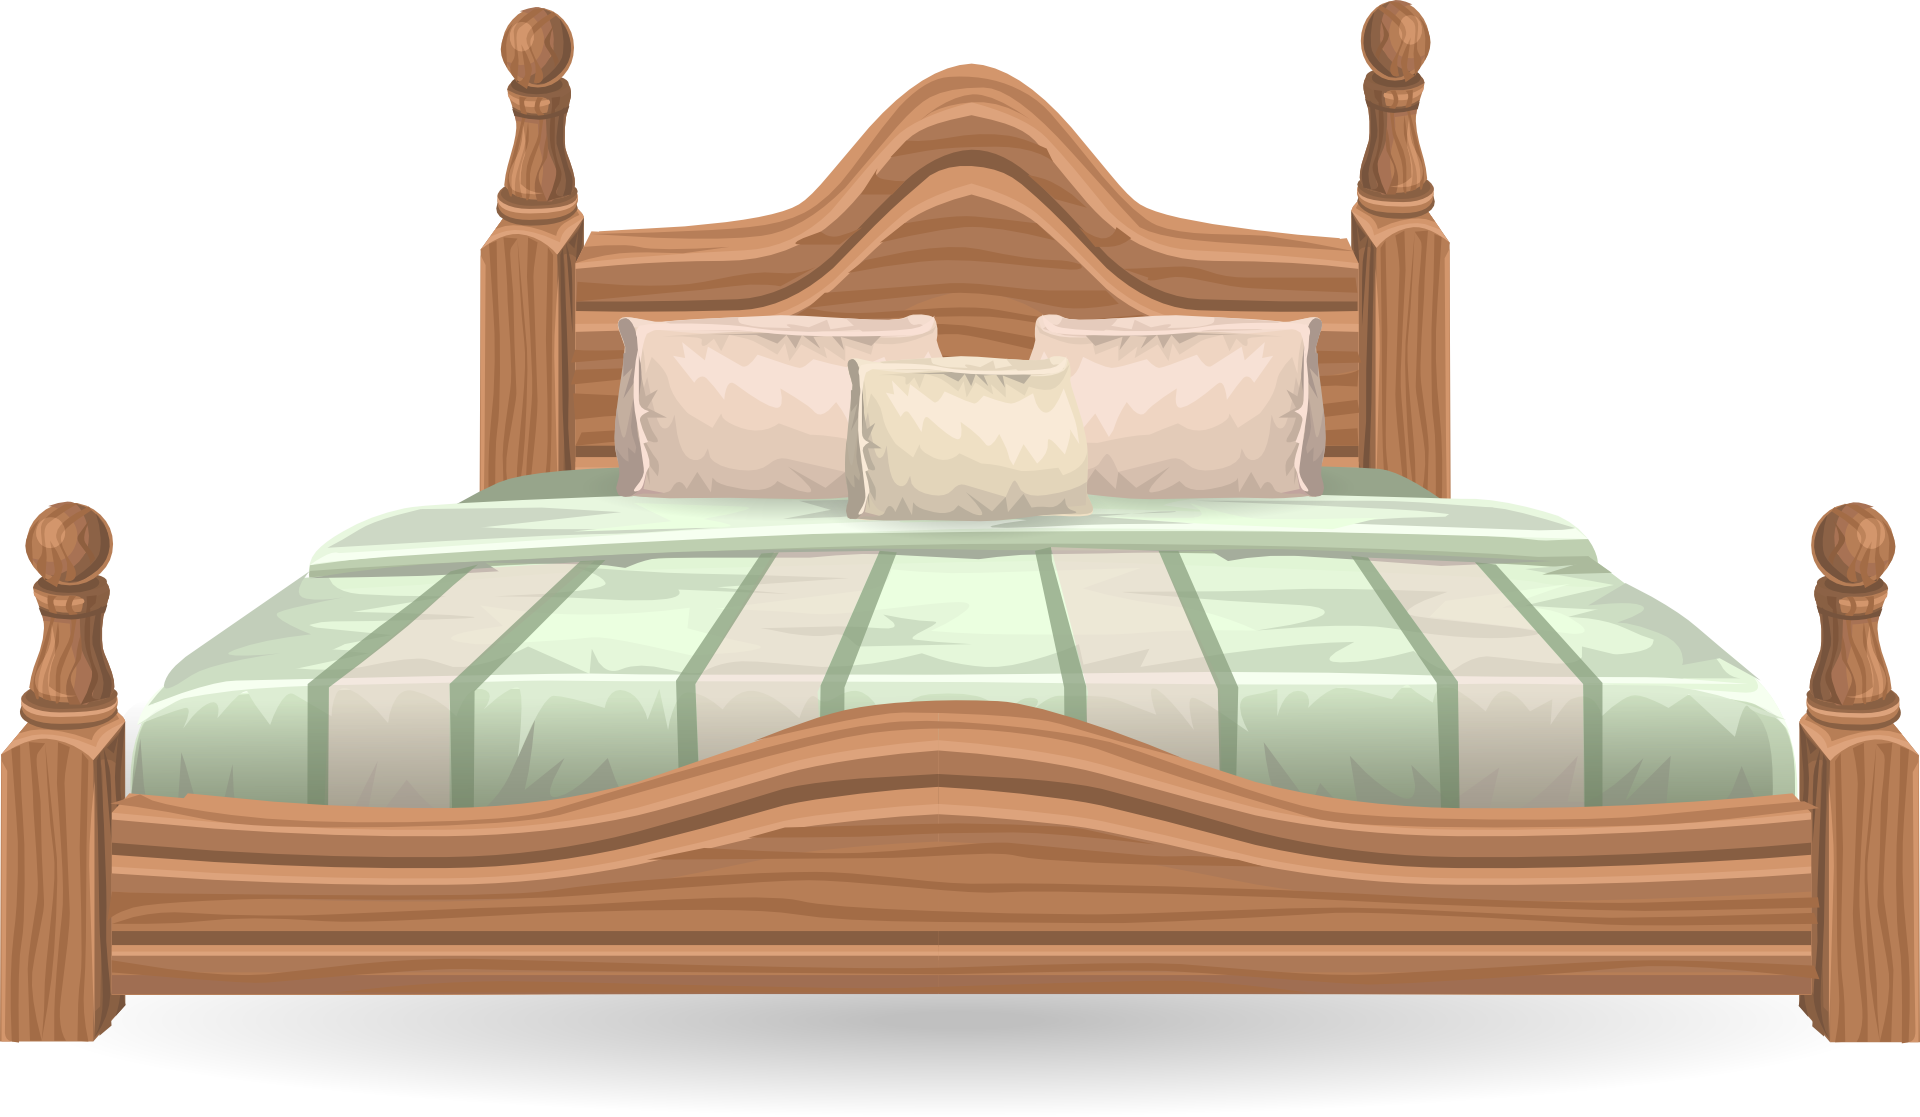 Night clipart night bed. Free bedroom furniture www